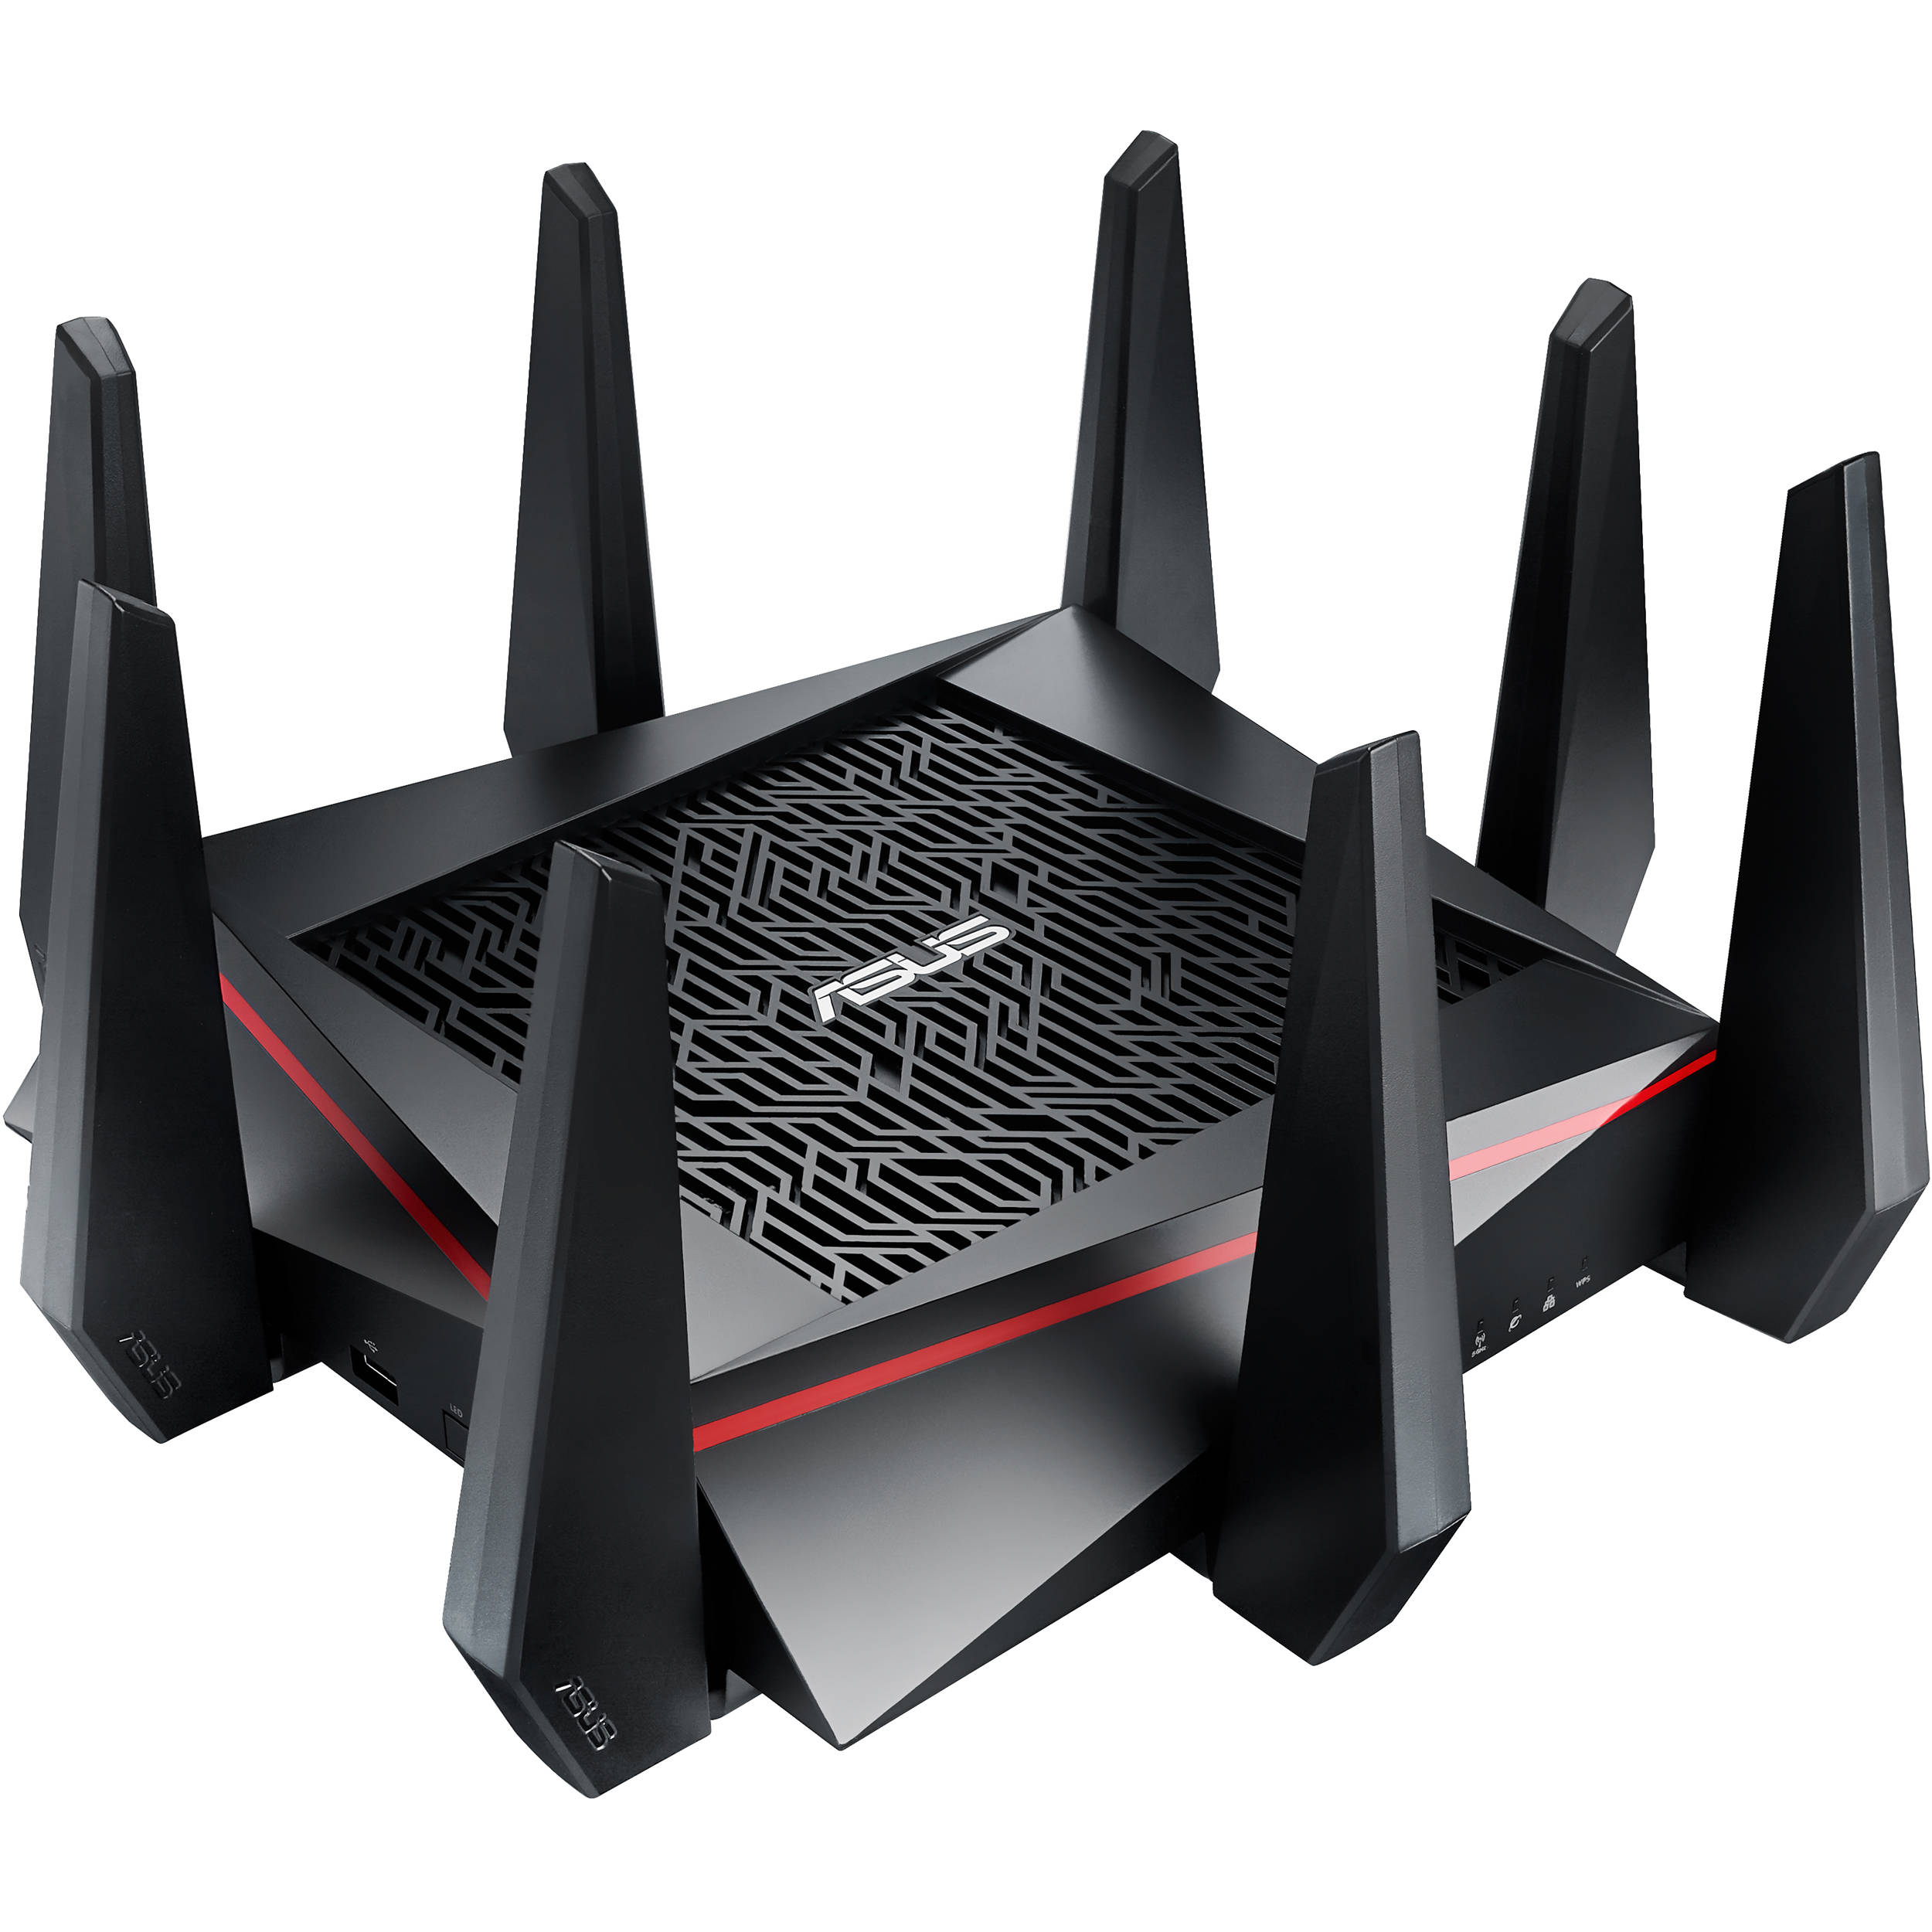 Asus Rt Ac5300 Tri Band Wireless Ac5300 Gigabit Router Rt